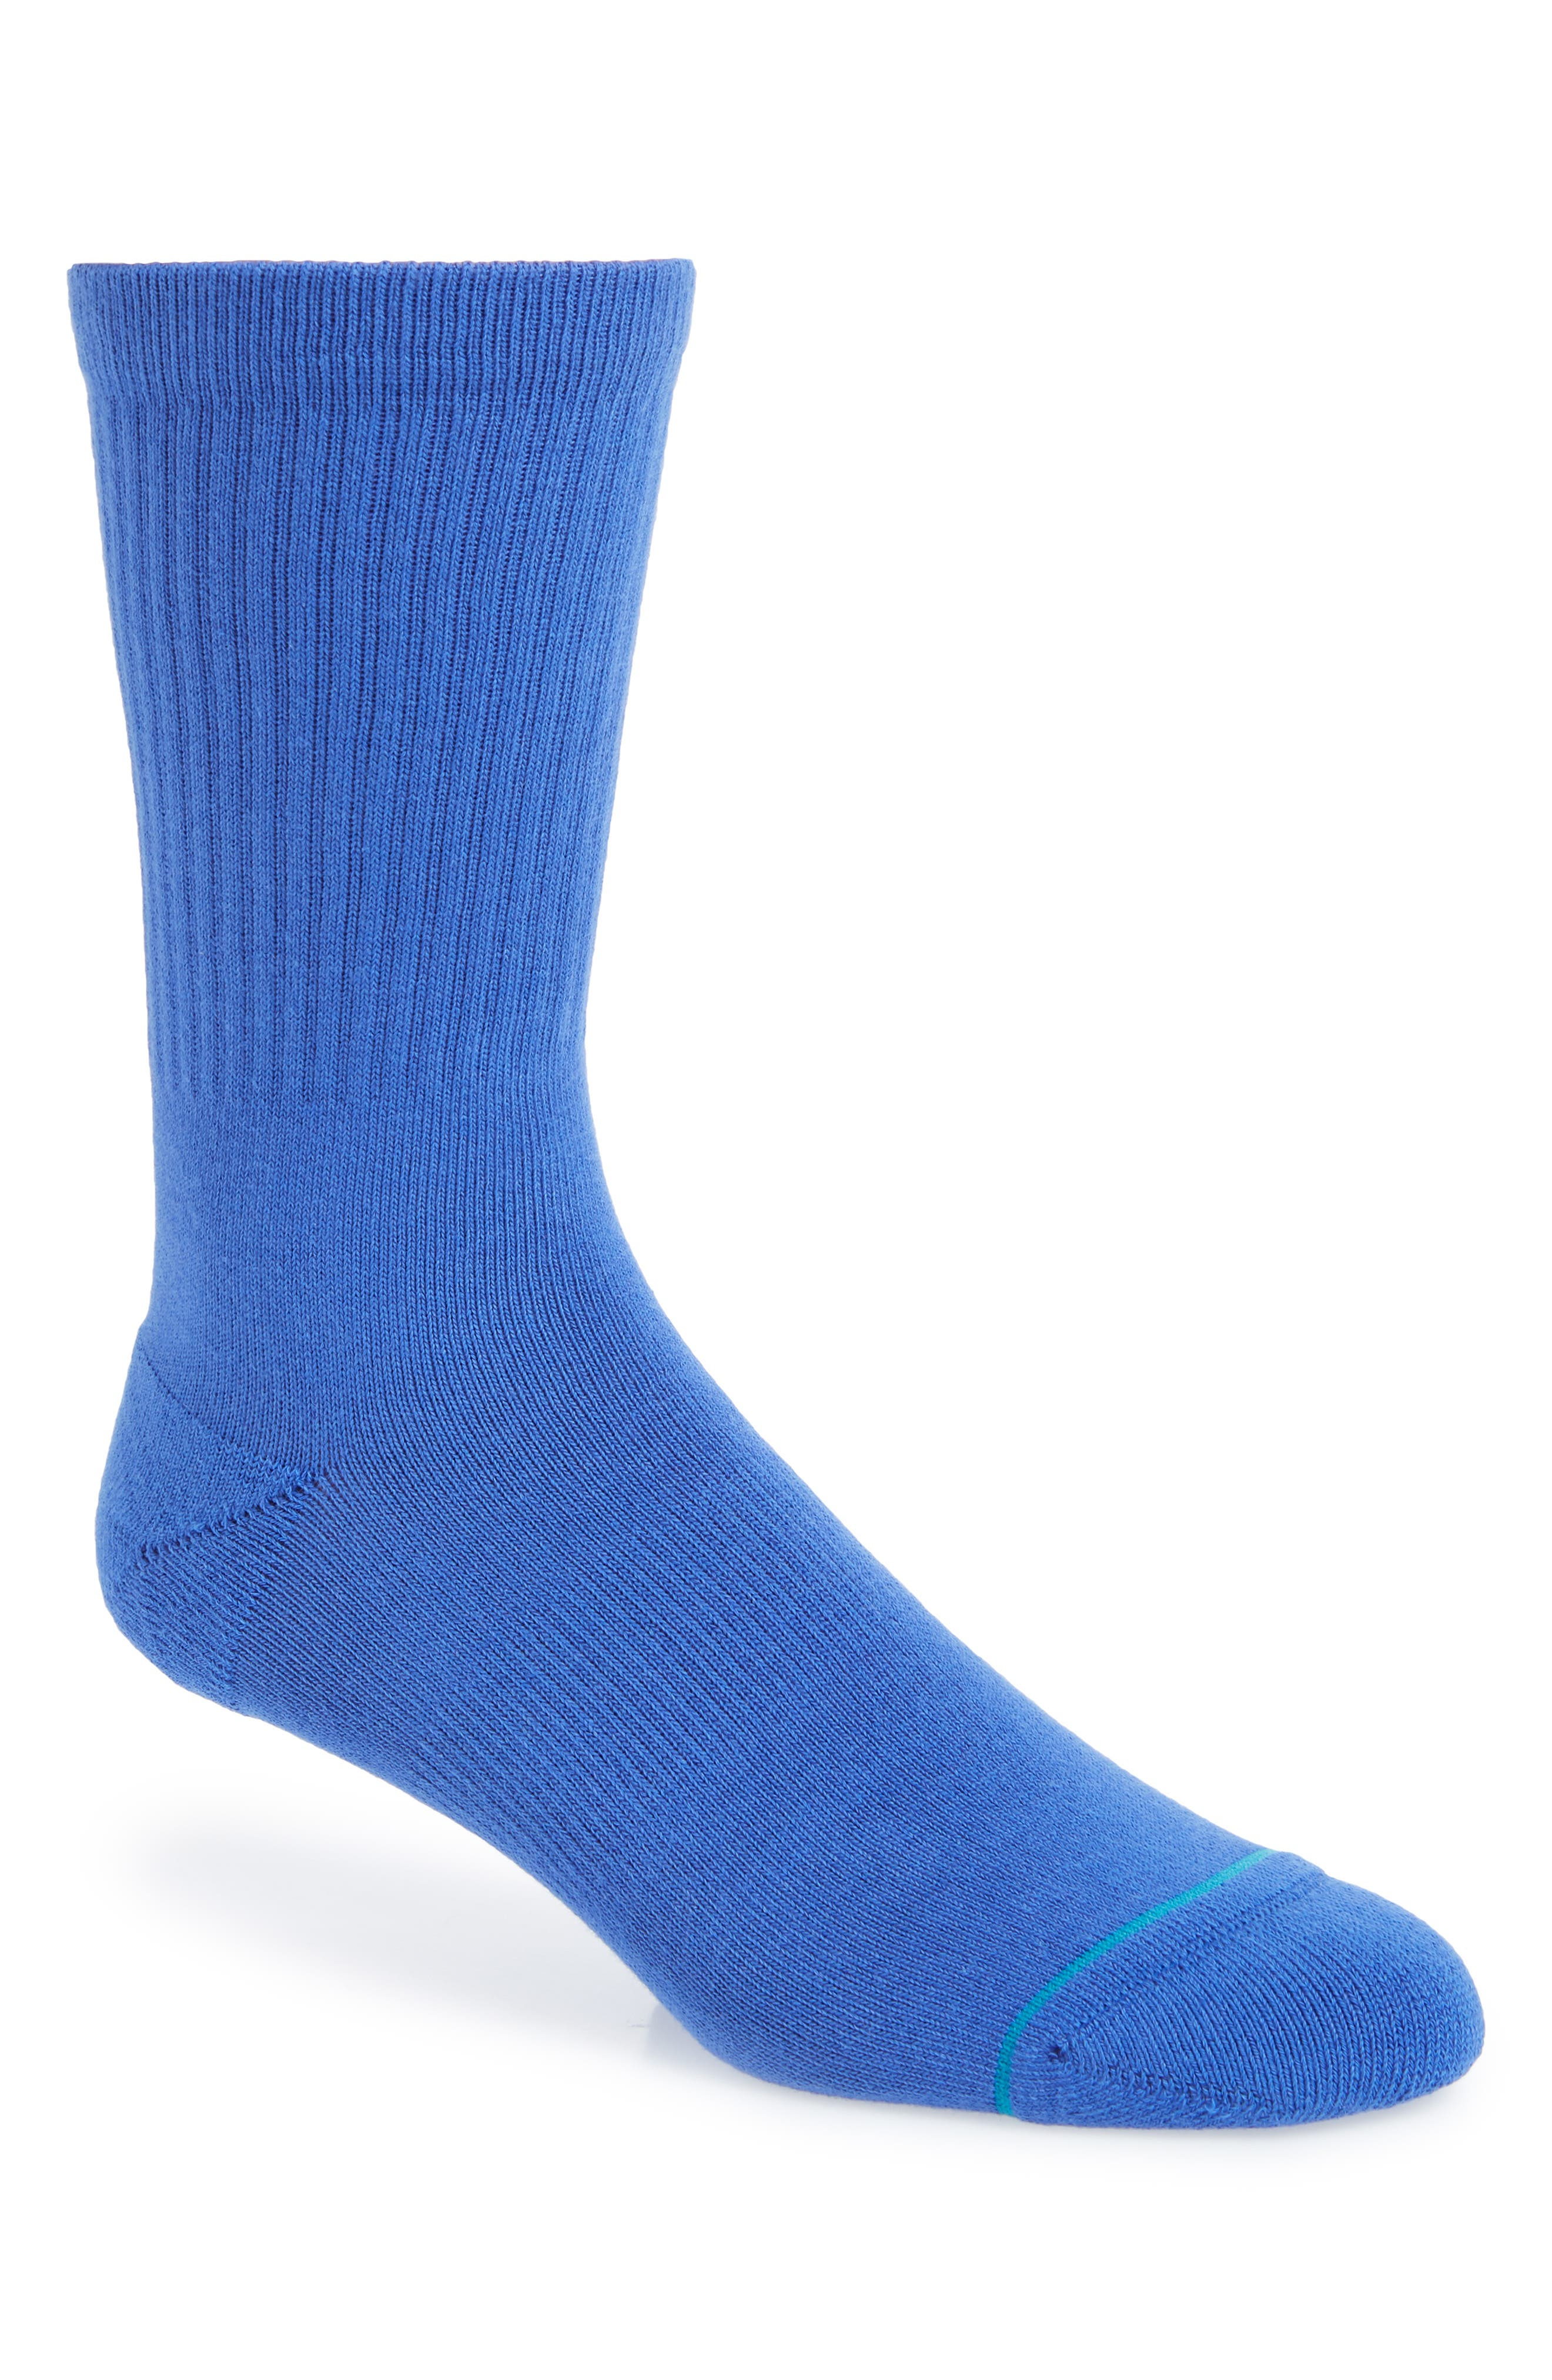 STANCE 'Icon' Athletic Socks, Main, color, ROYAL